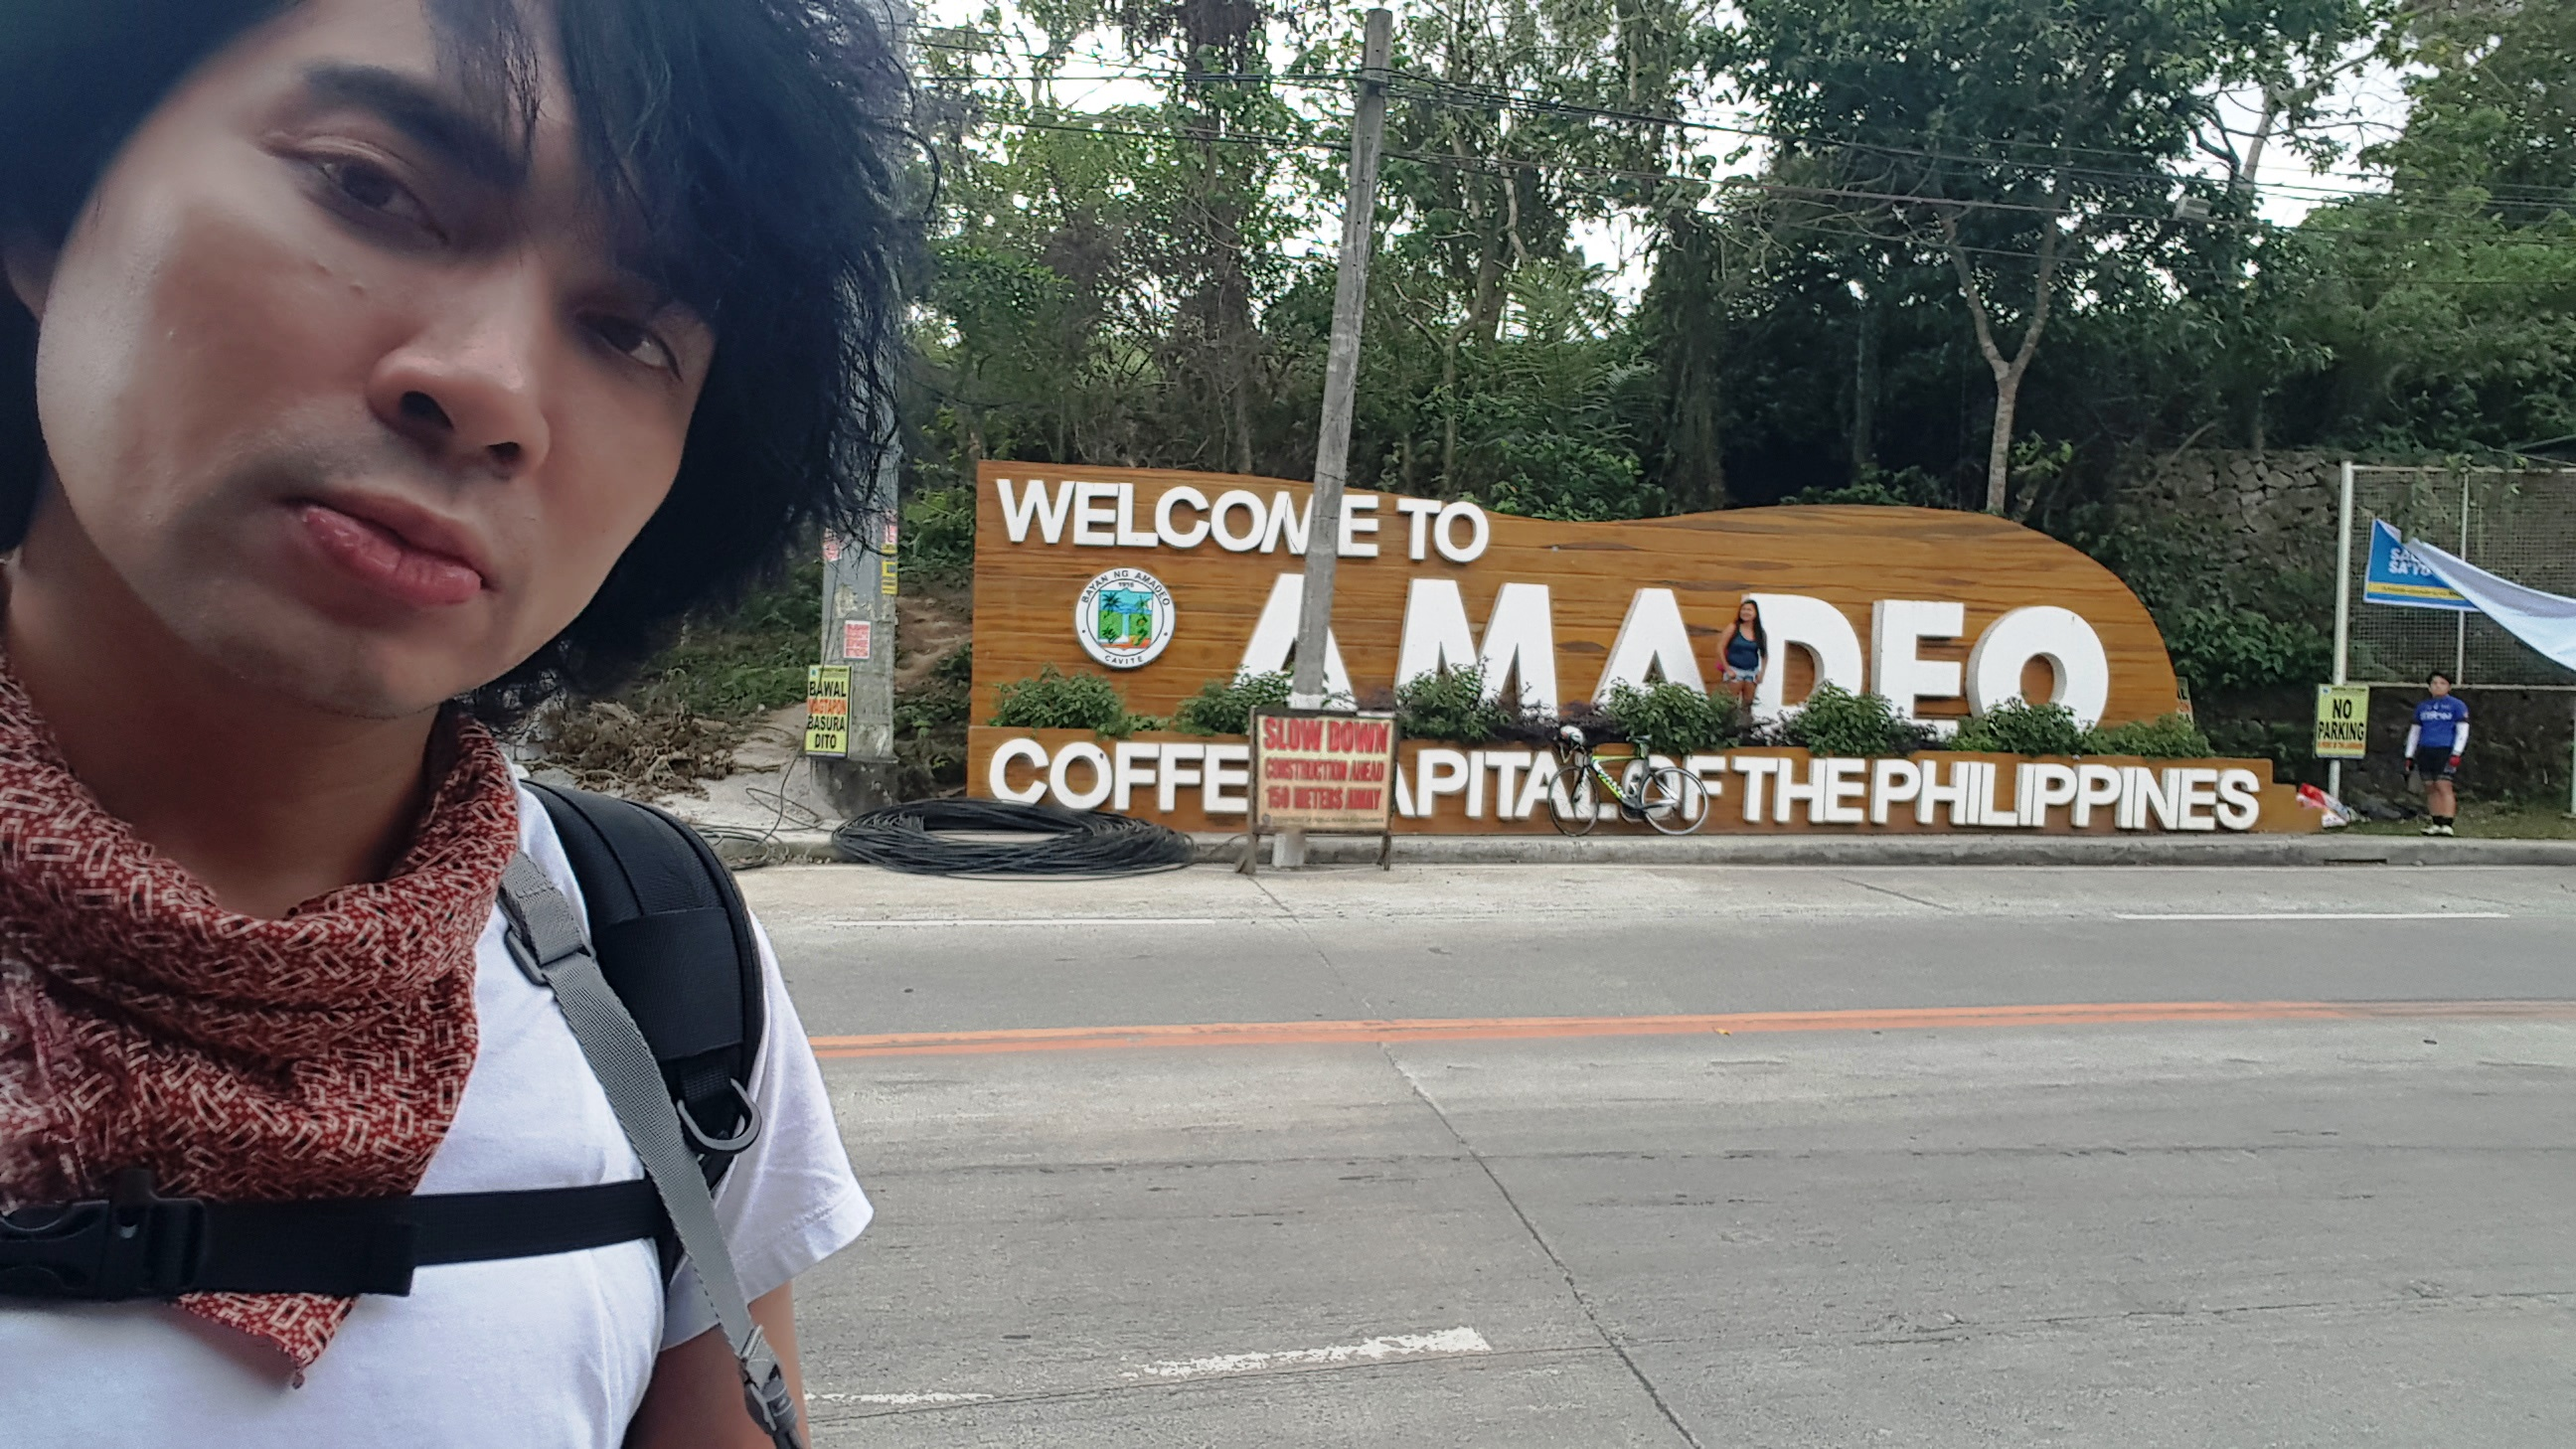 Amadeo, Cavite is the Coffee Capital of the Philippines.